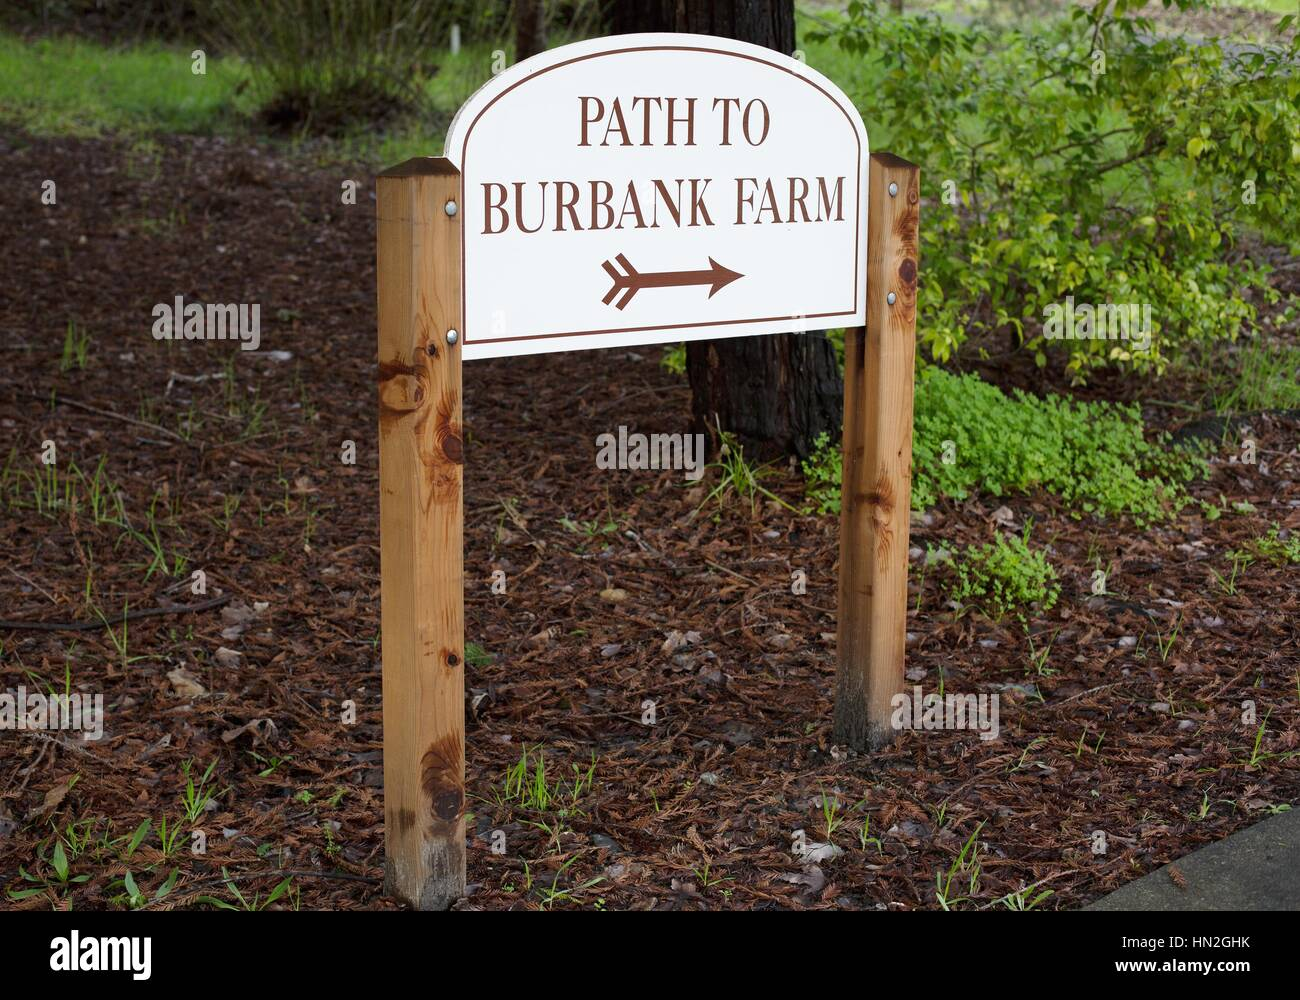 A sign pointing to the Luther Burbank Experimental Farm in Sebastopol, California. - Stock Image